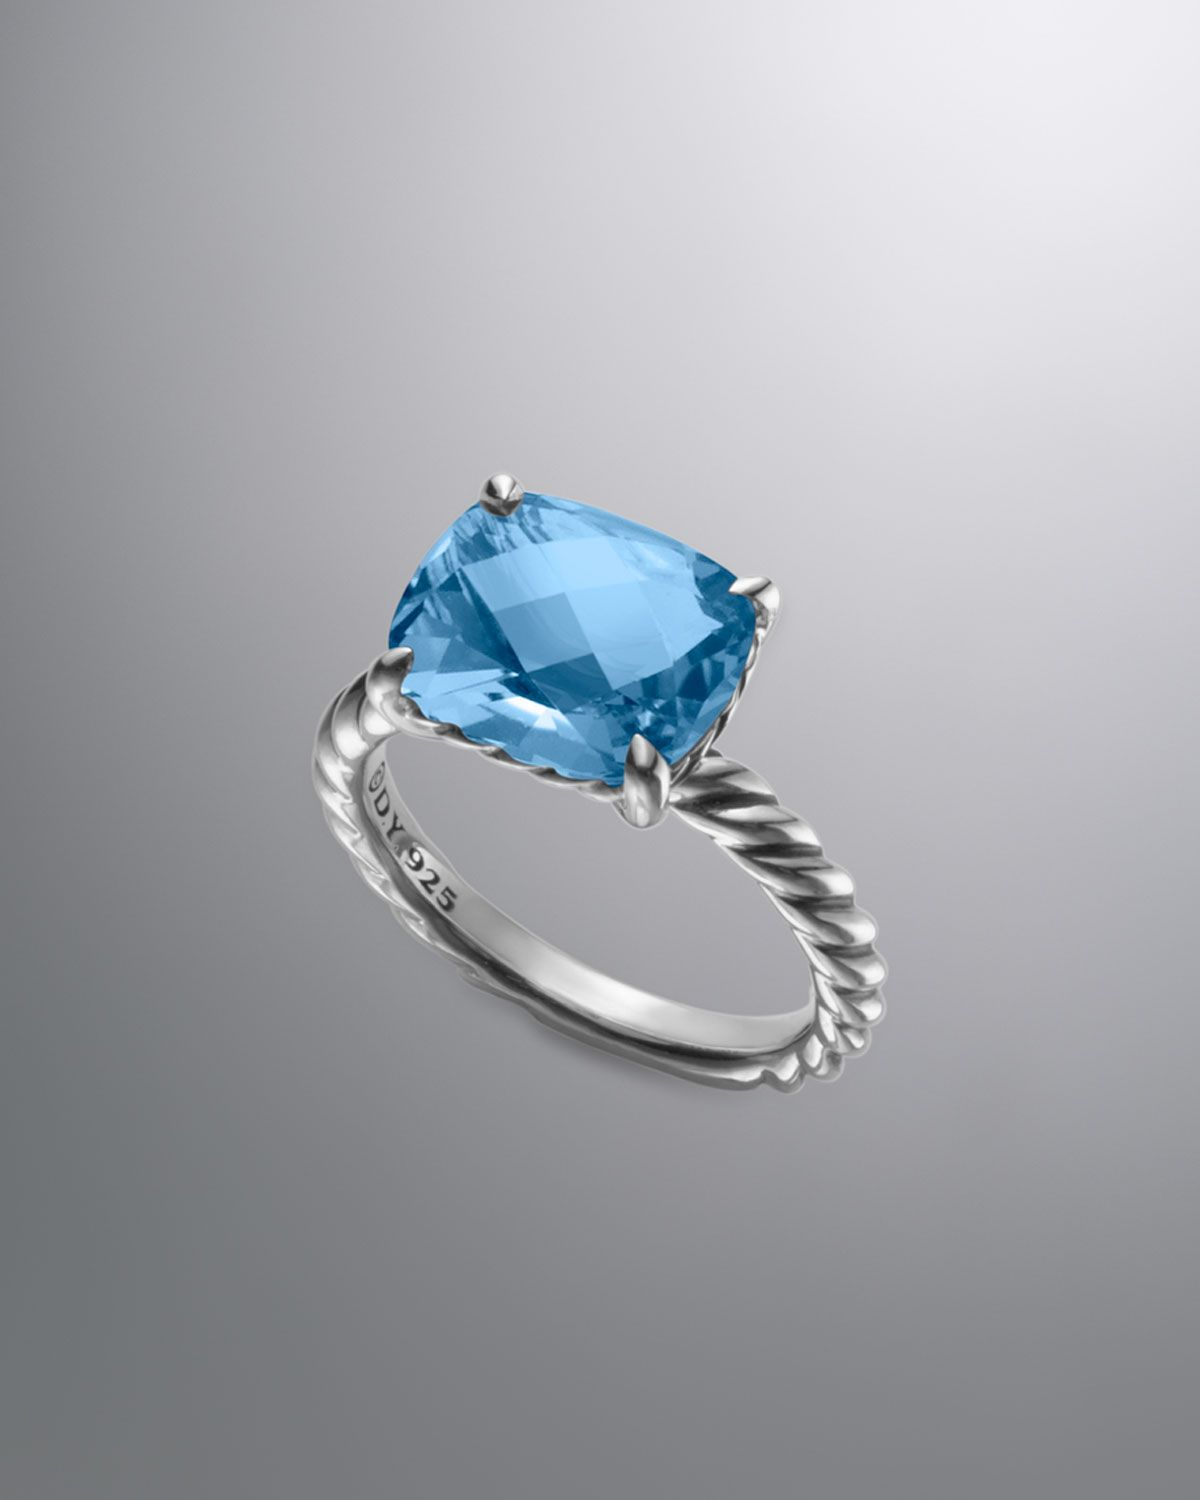 http://harrislove.com/david-yurman-color-classics-ring-blue-topaz-12x10mm-p-7030.html